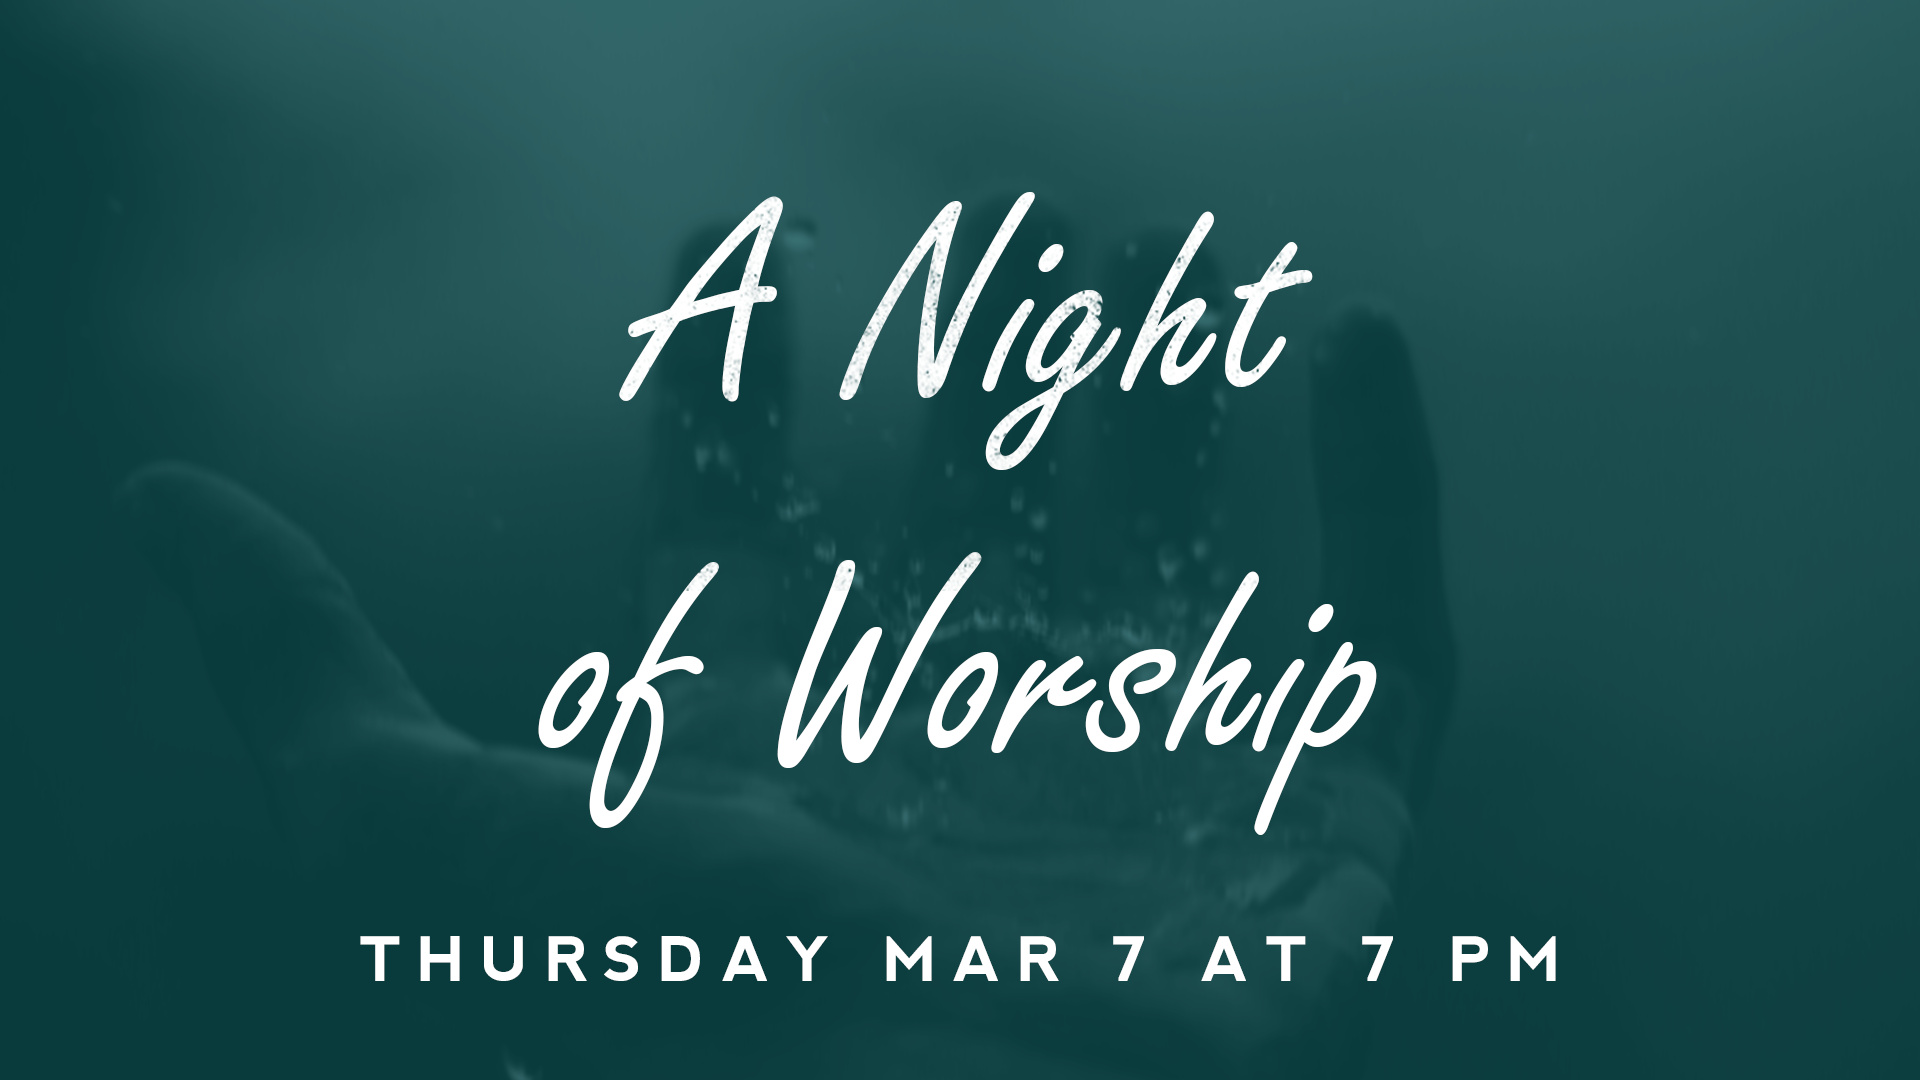 Come join us as we dedicate a night in praise and worship to the LORD.